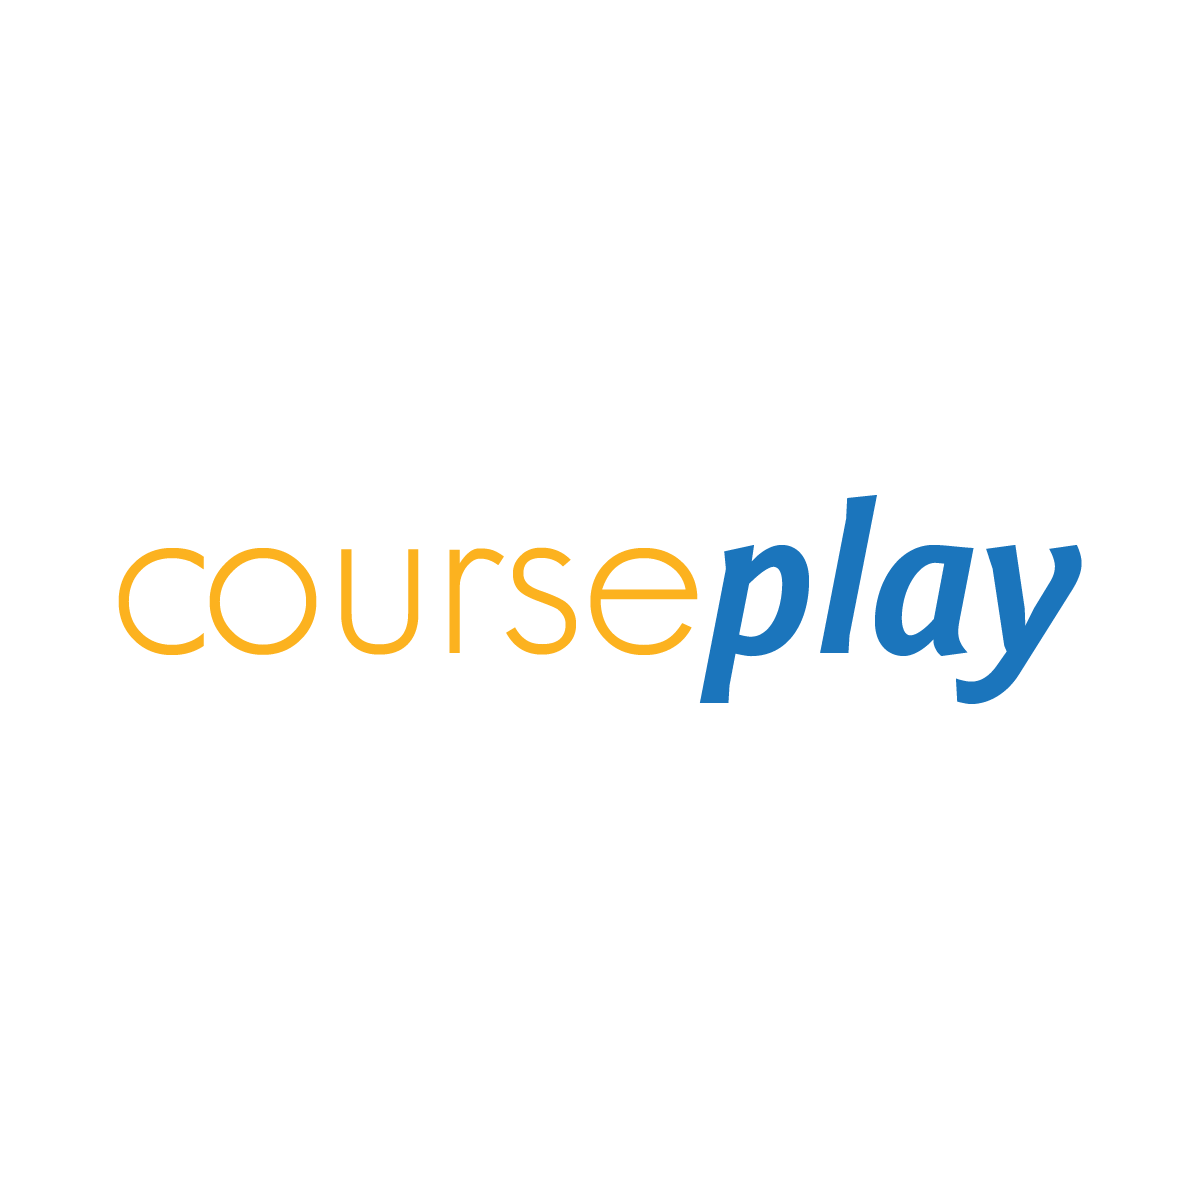 Courseplay 1490280061 logo